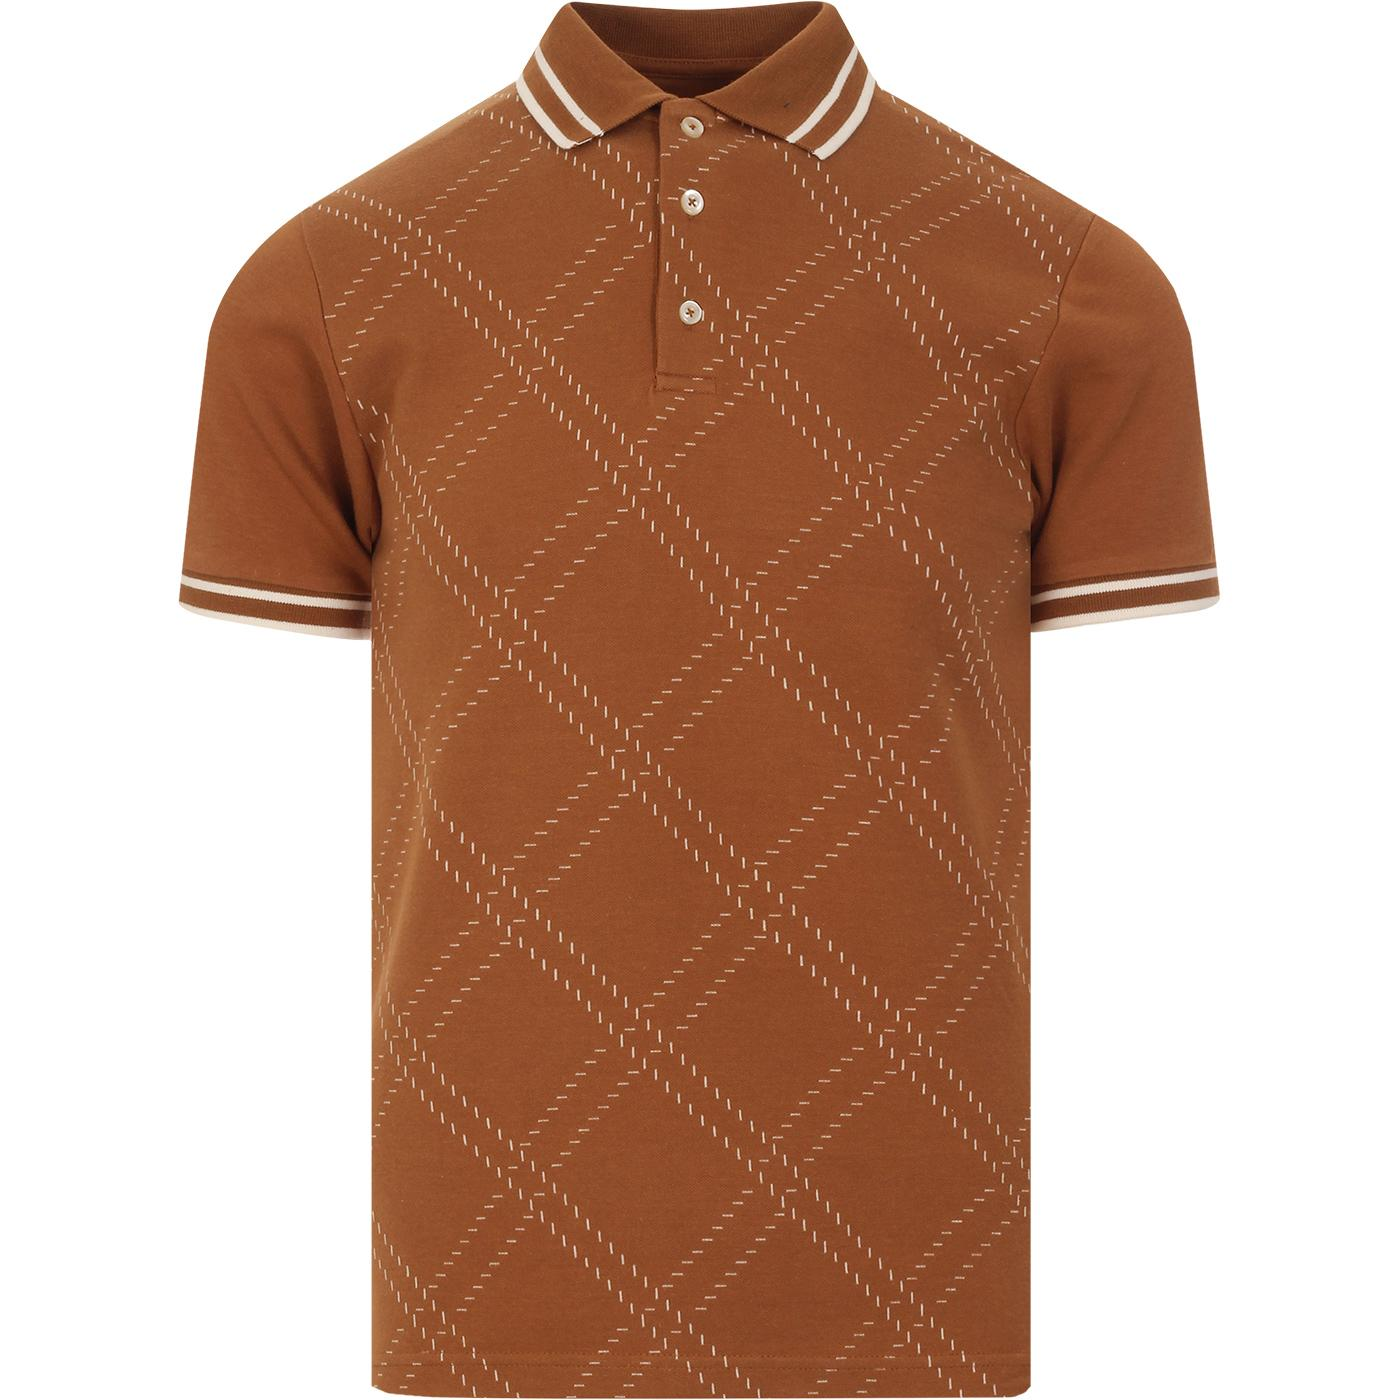 SKA & SOUL Jacquard Stitch Diamond Argyle Polo (G)